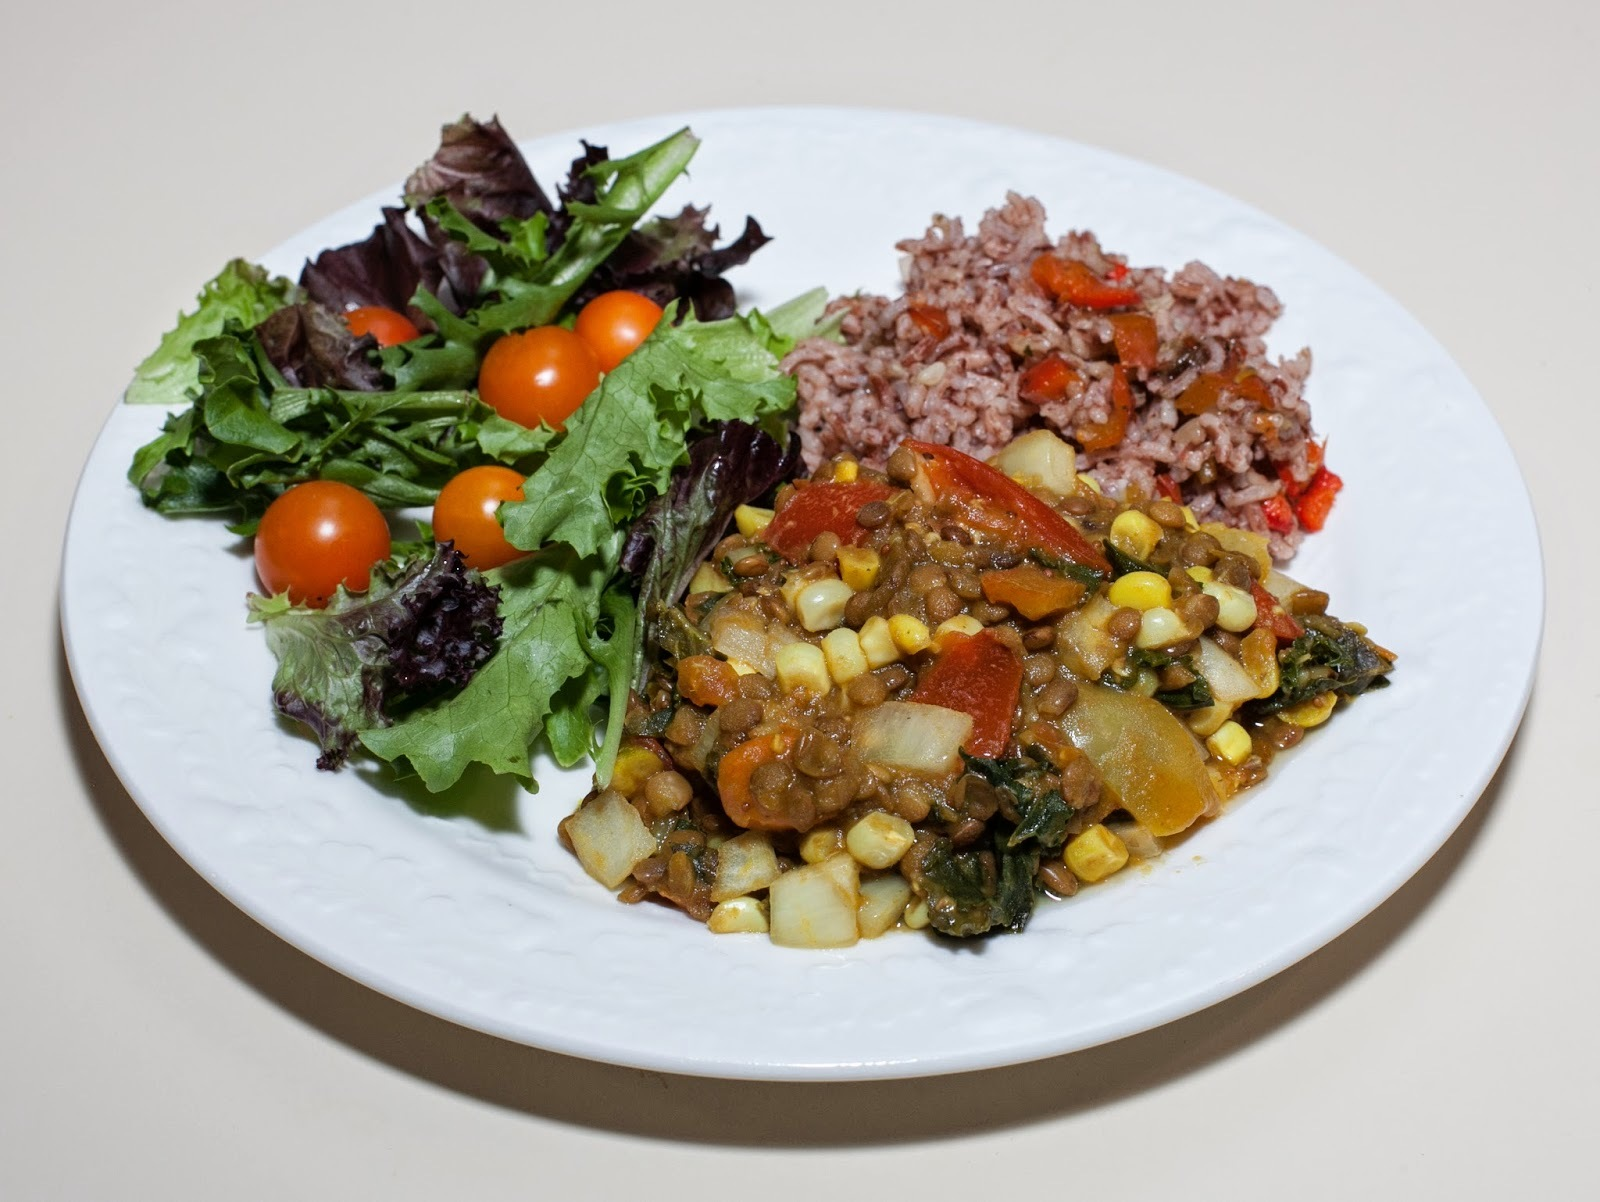 Brown Lentil Dhal with Kale, Corn, and Preserved Lemon, served with Madagascar Pink Rice, Baby Lettuces, & Sungold Tomato (No Added Fat)